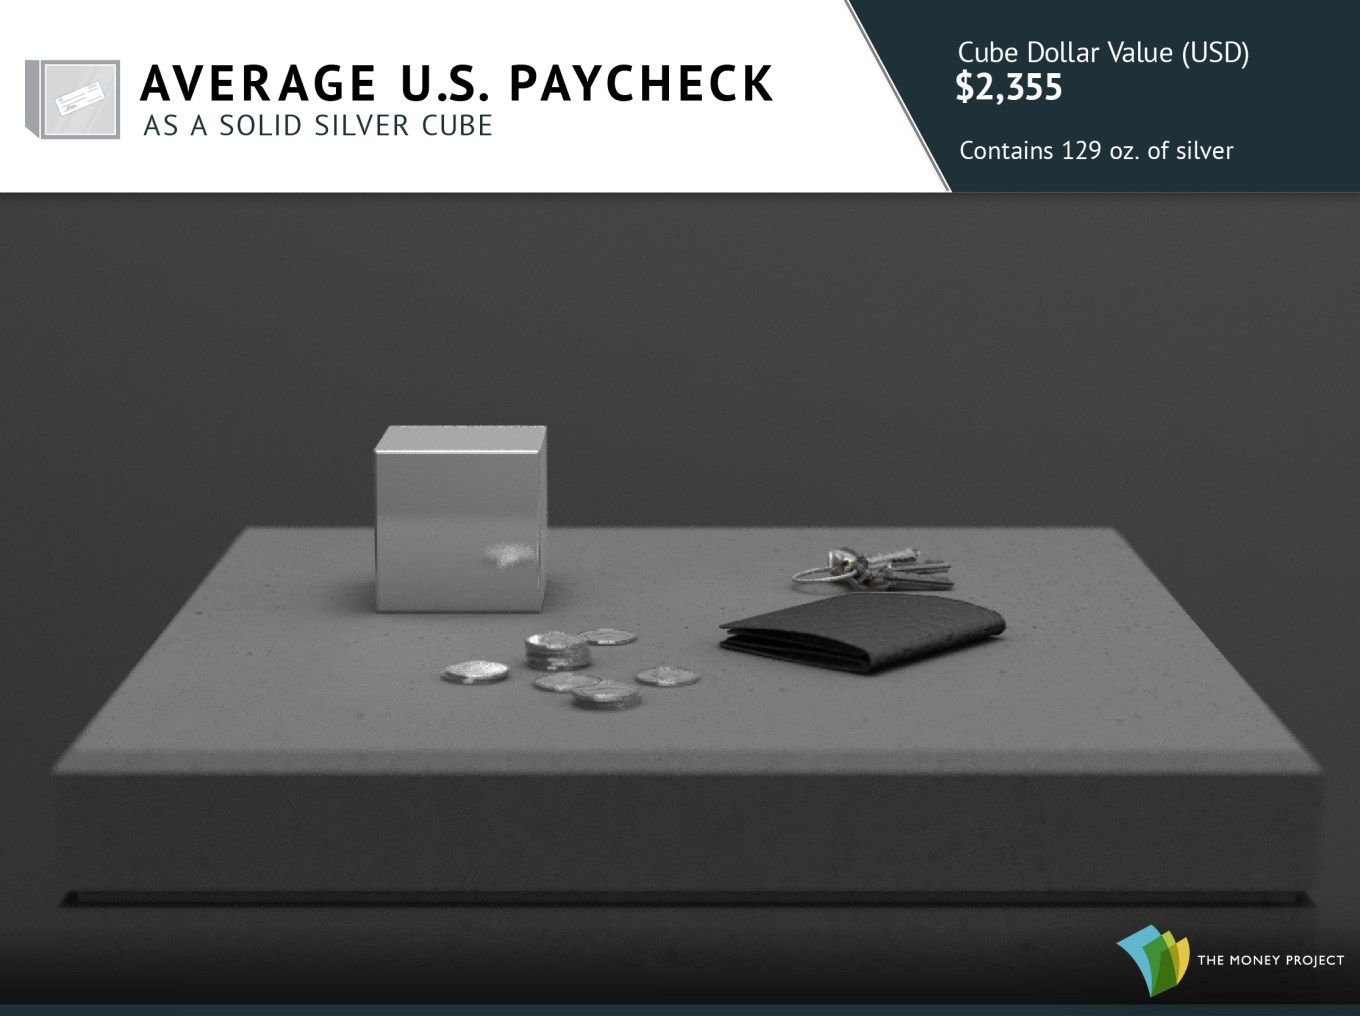 Average U.S. Paycheck as a Silver Cube